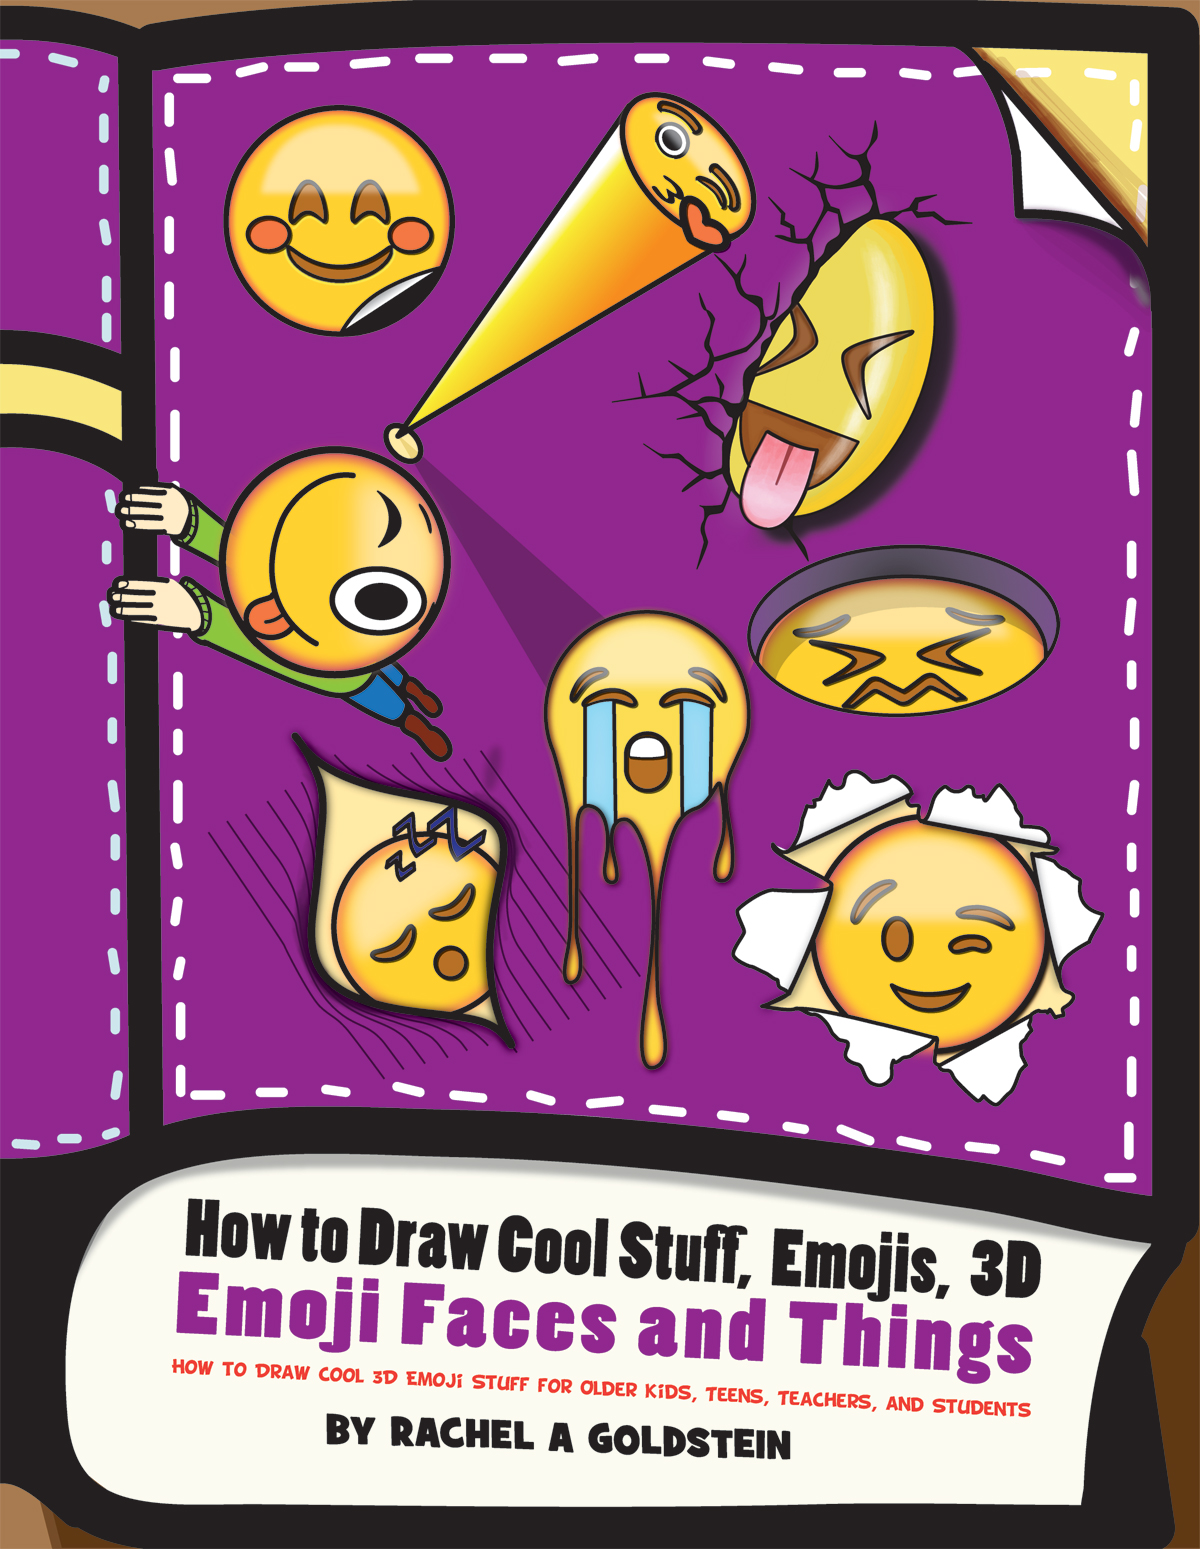 How to Draw Cool Stuff Emojis